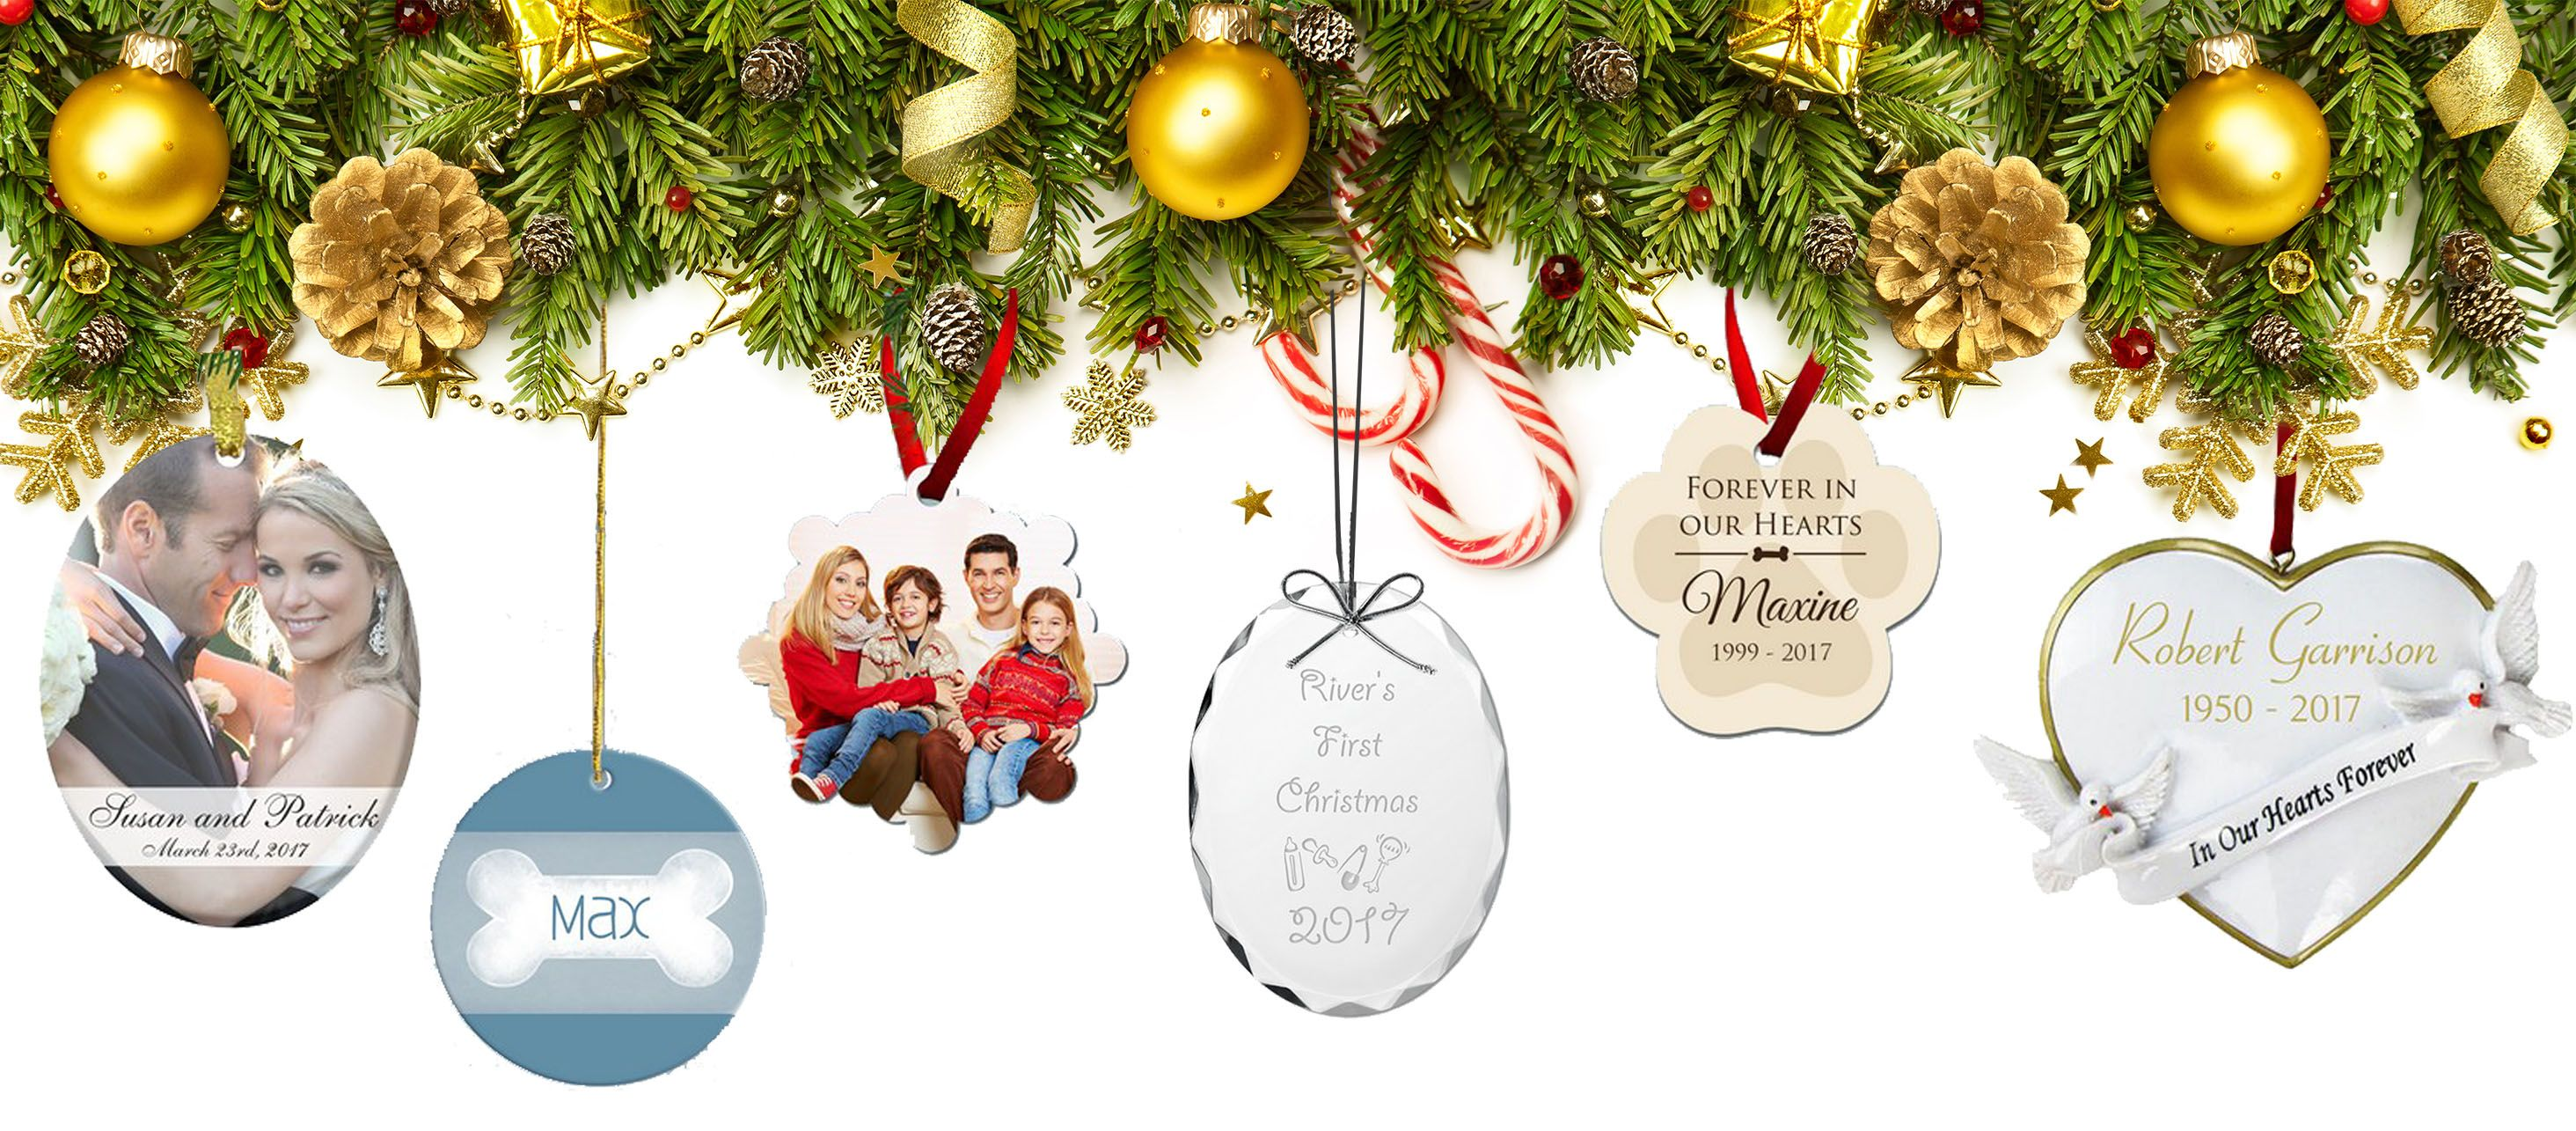 New blog post up christmas ornament gift guide for everyone on